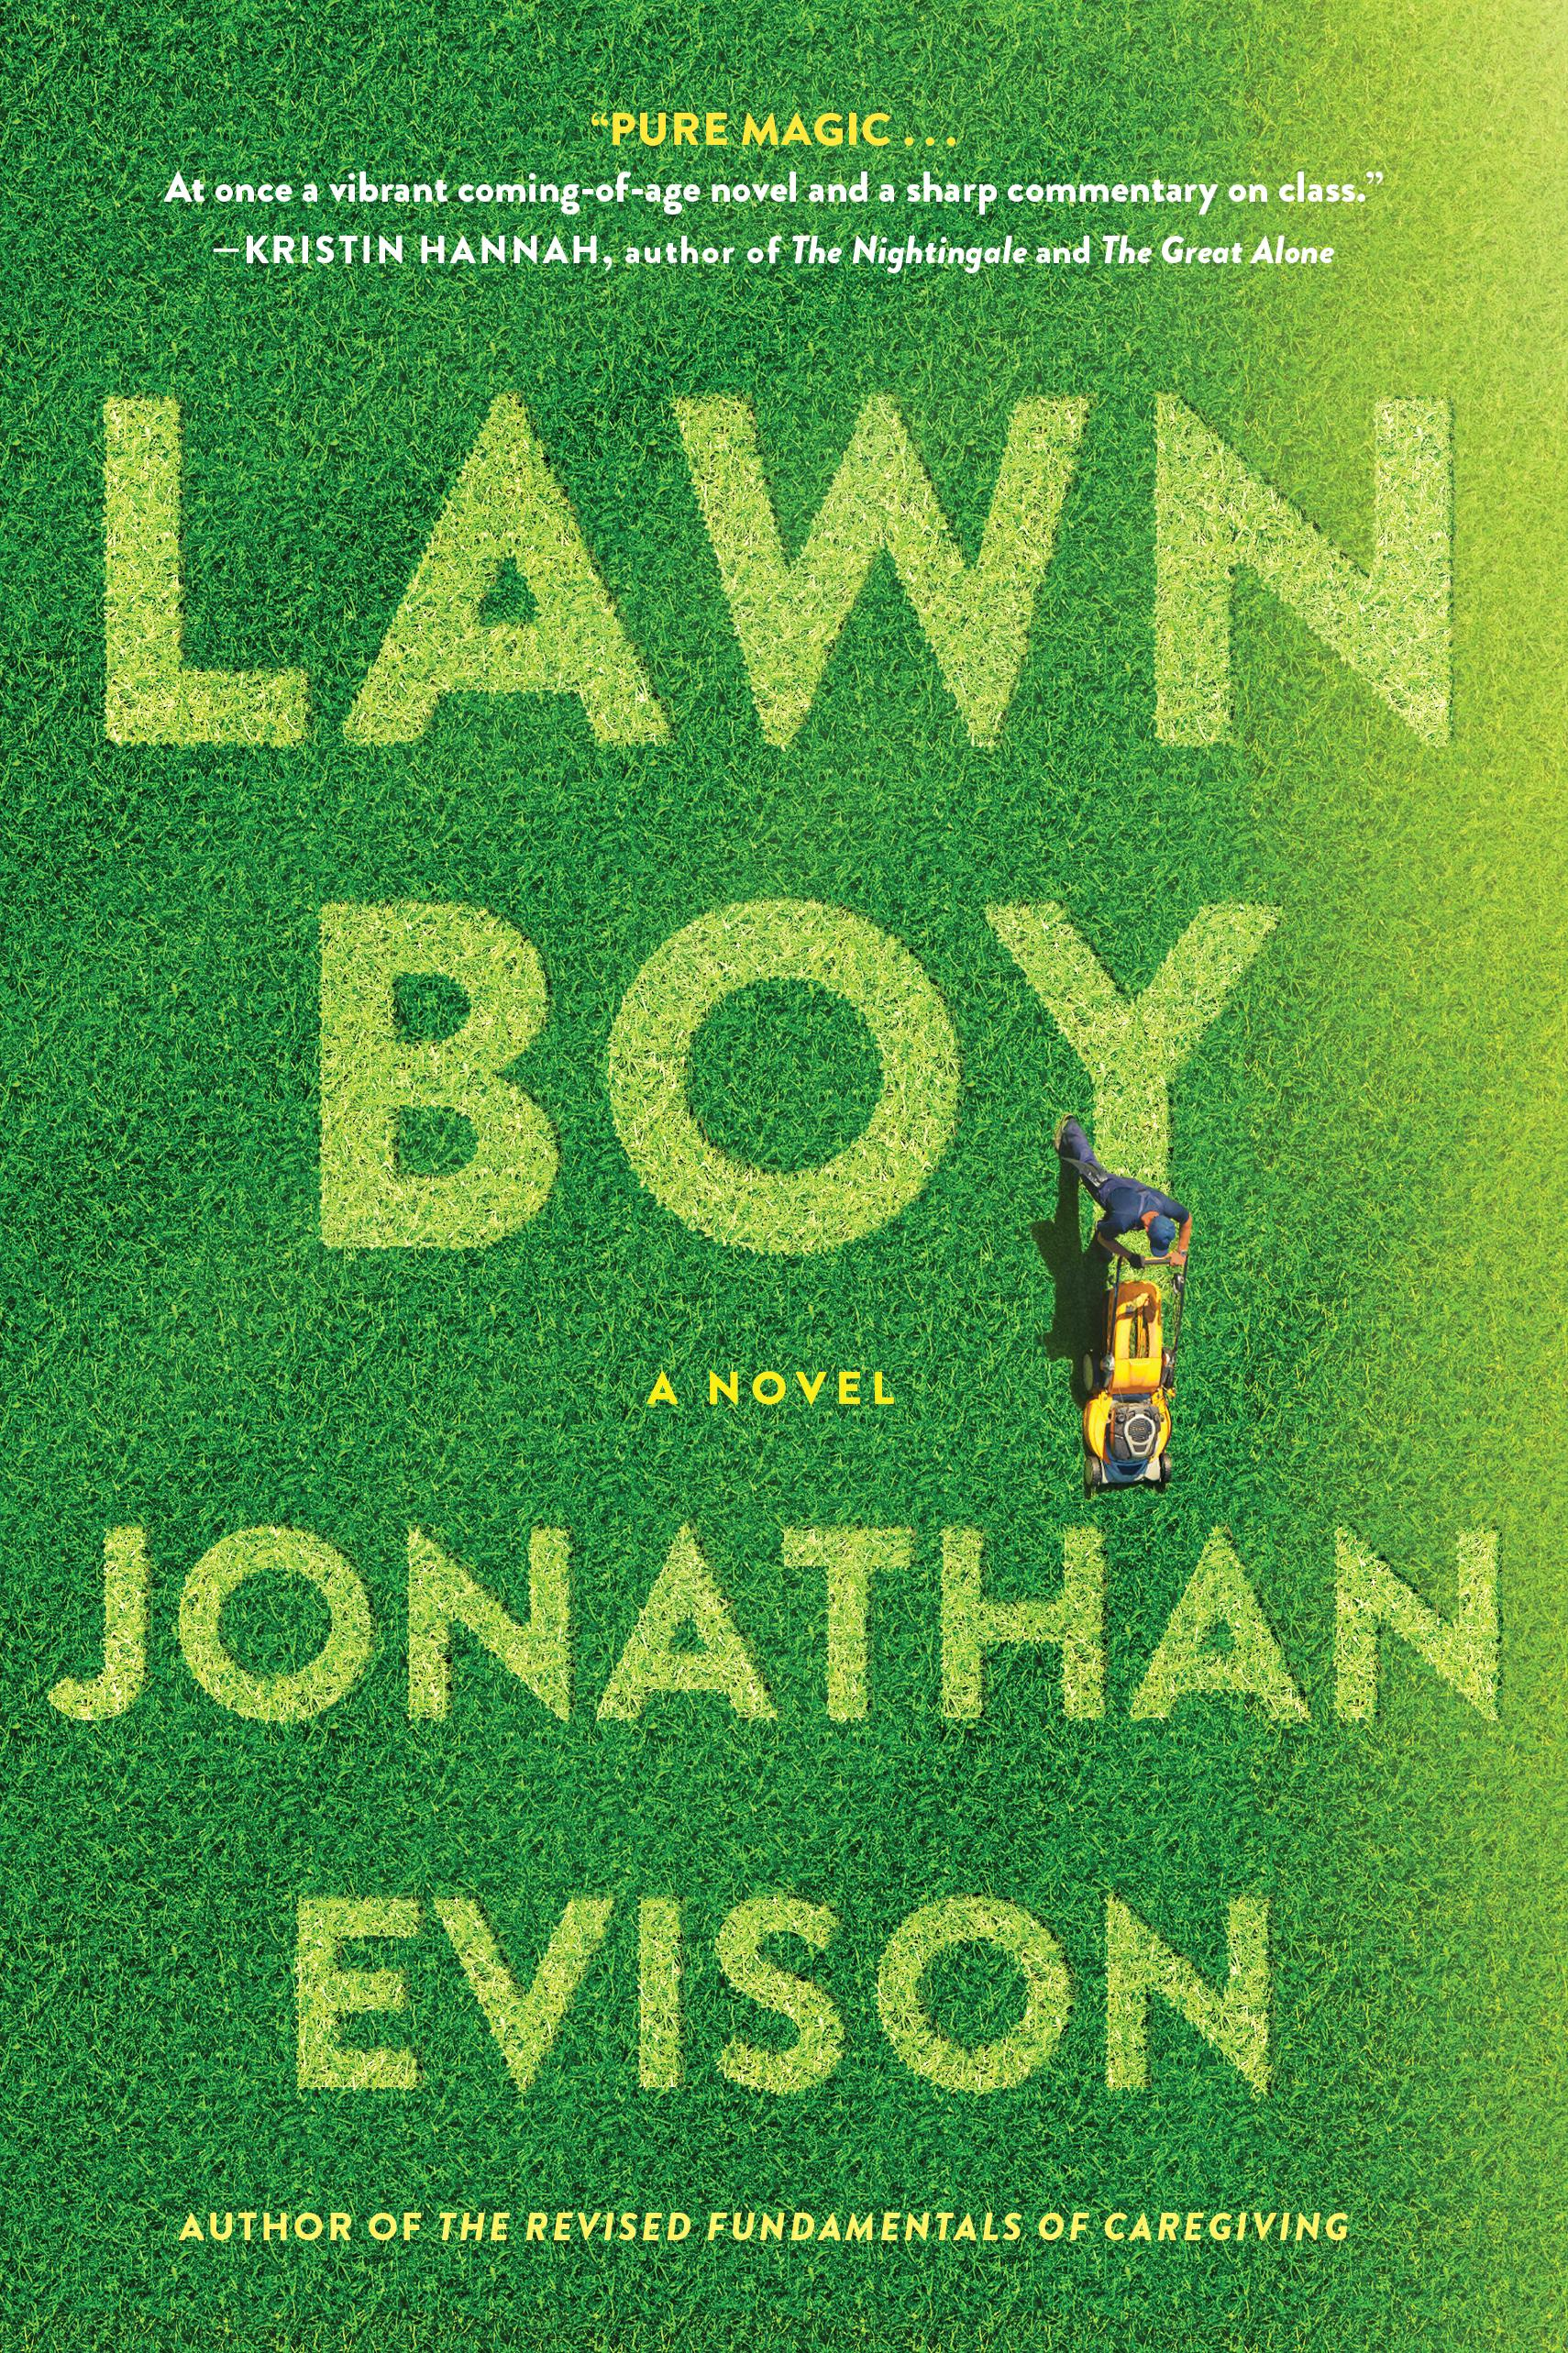 Lawn Boy By Jonathan Evison. Evison's latest book is about a young Chicano living in Washington State. For Mike  Muñoz, life has been a whole lot of waiting for something to happen. After being fired from a landscaping crew as a lawn boy, Muñoz decides to shake things up. This book is ultimately about the journey of self discovery but also covers social class distinctions, cultural discrimination and how to achieve the American dream through trial and hardship. (Image: Amazon){ }